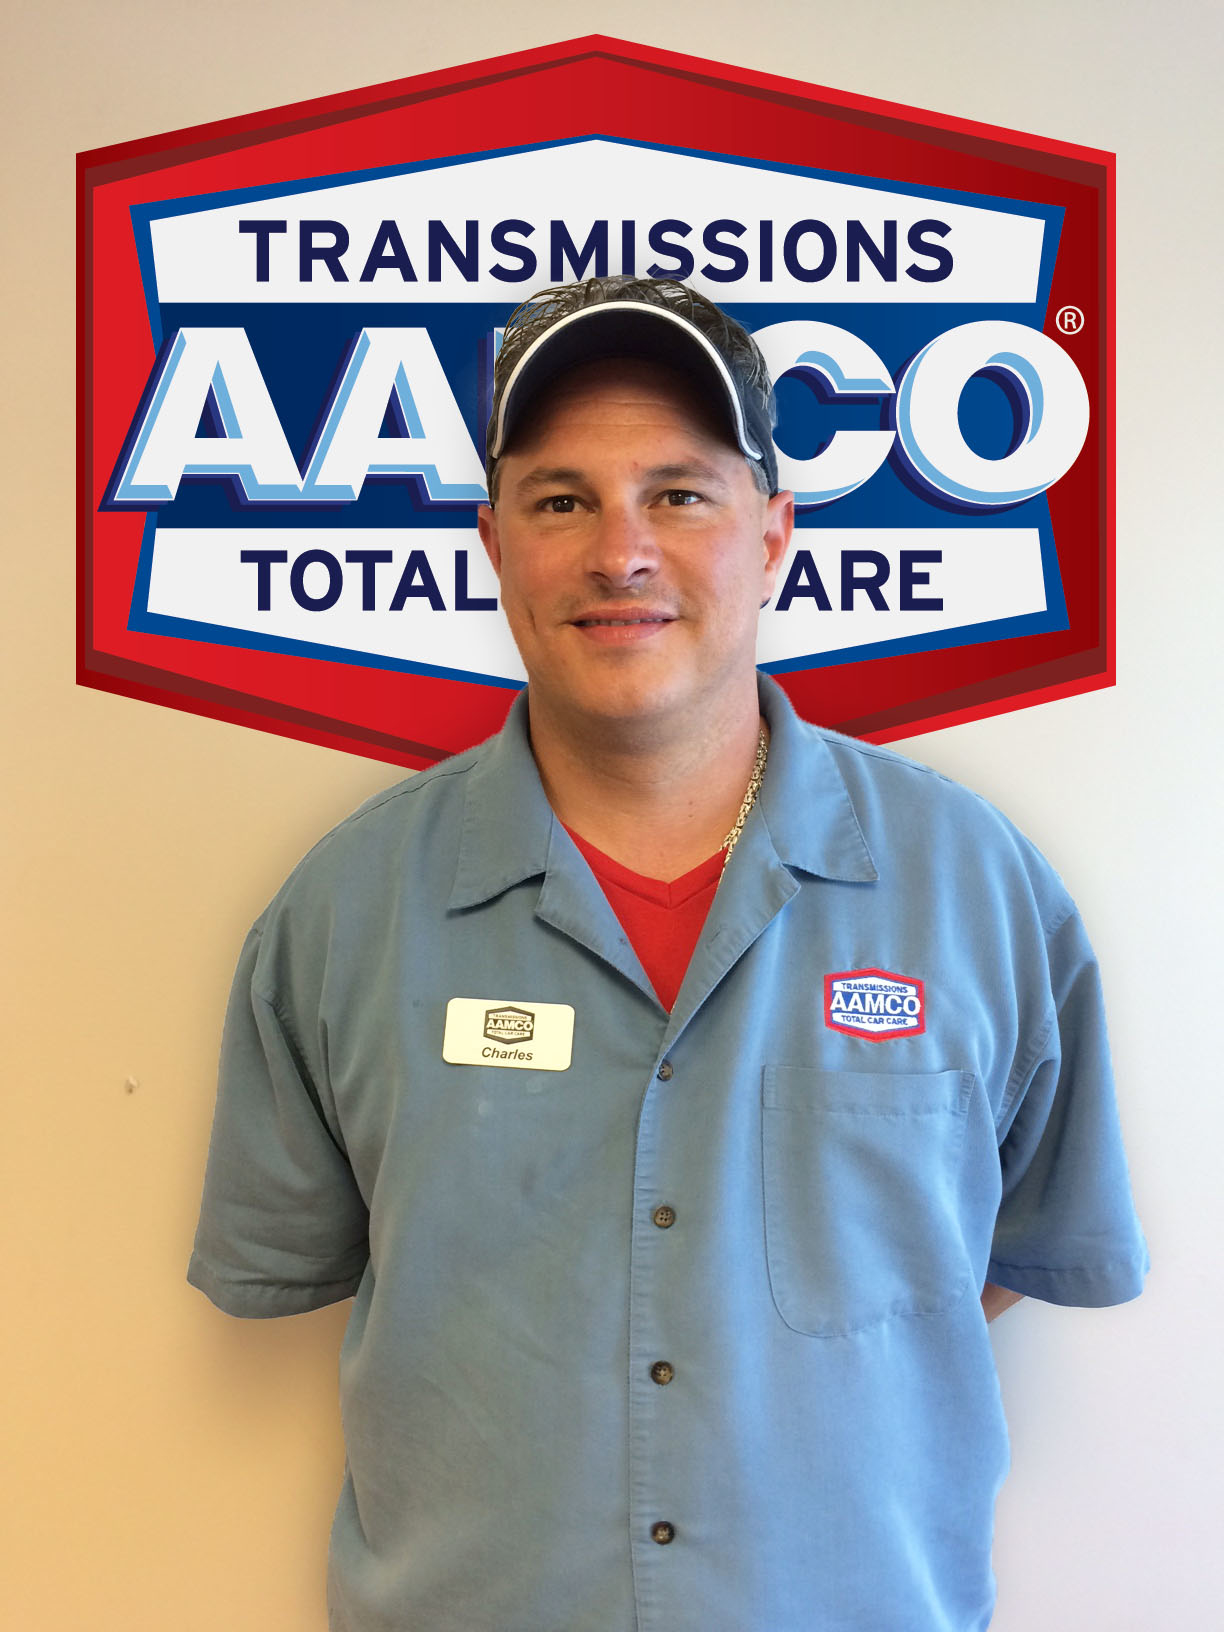 AAMCO Transmissions & Total Car Care image 2